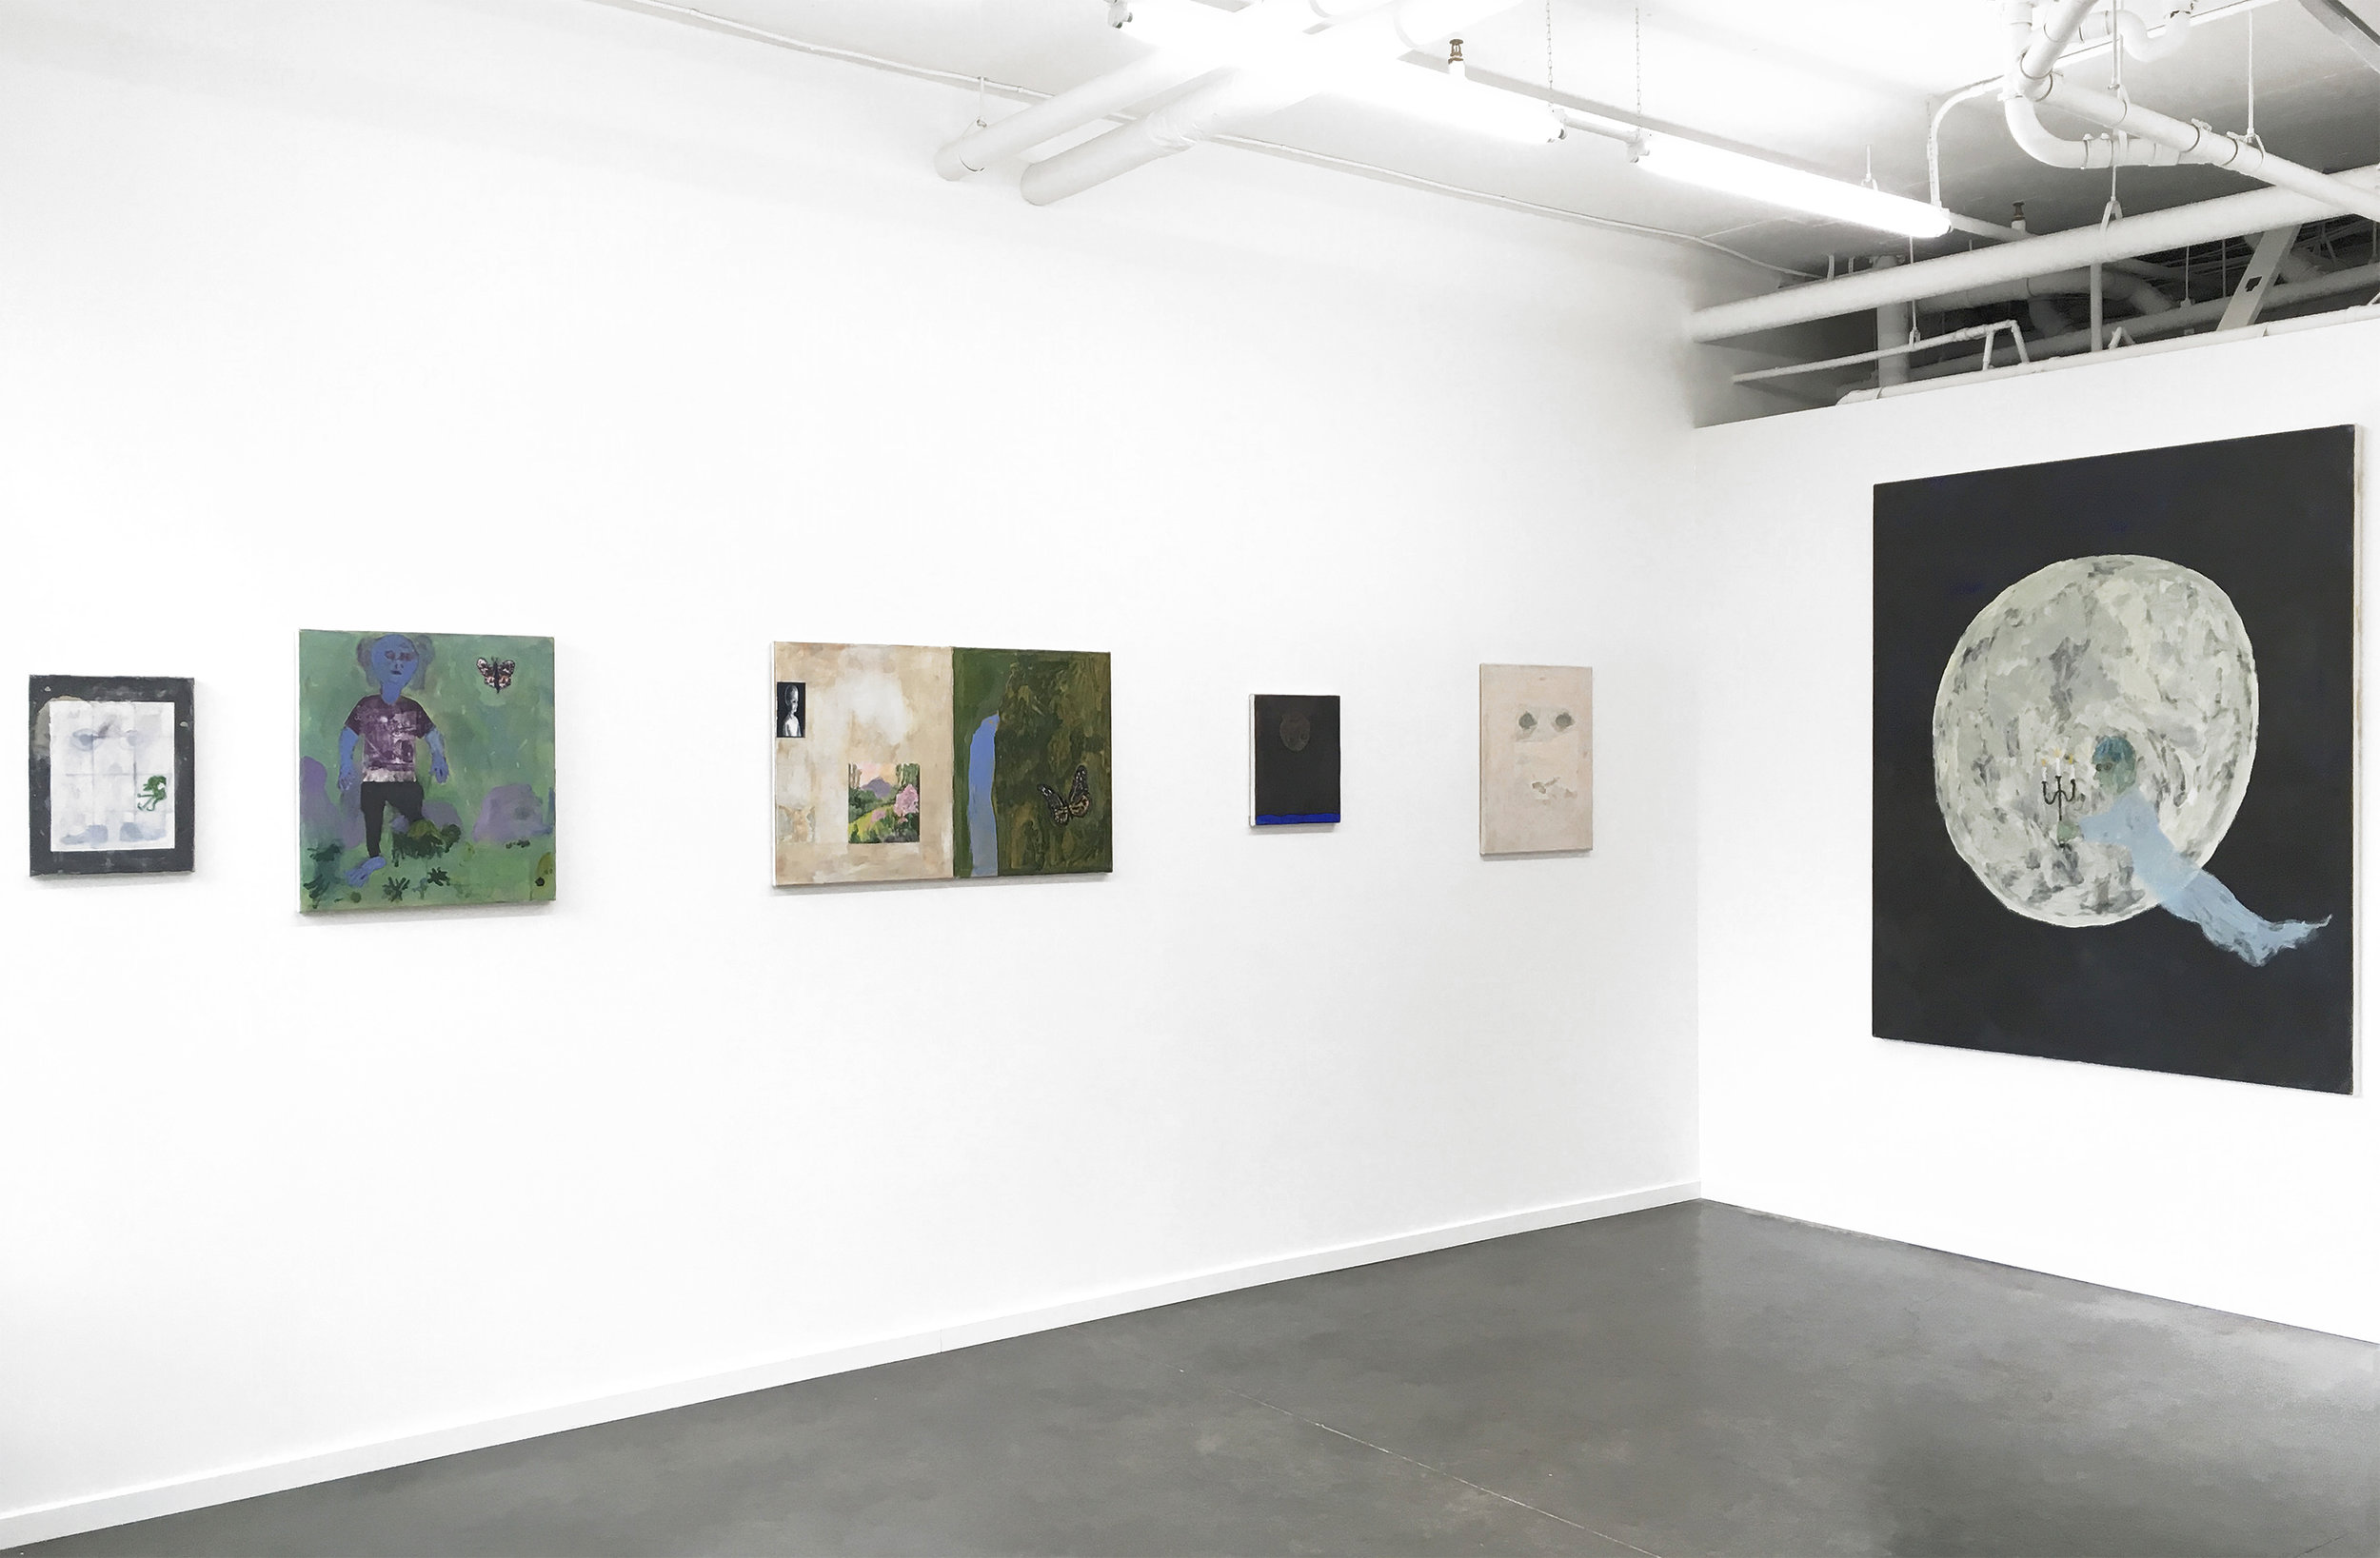 Jake Manning's  Guests of Space  is on view through April 17, 2018